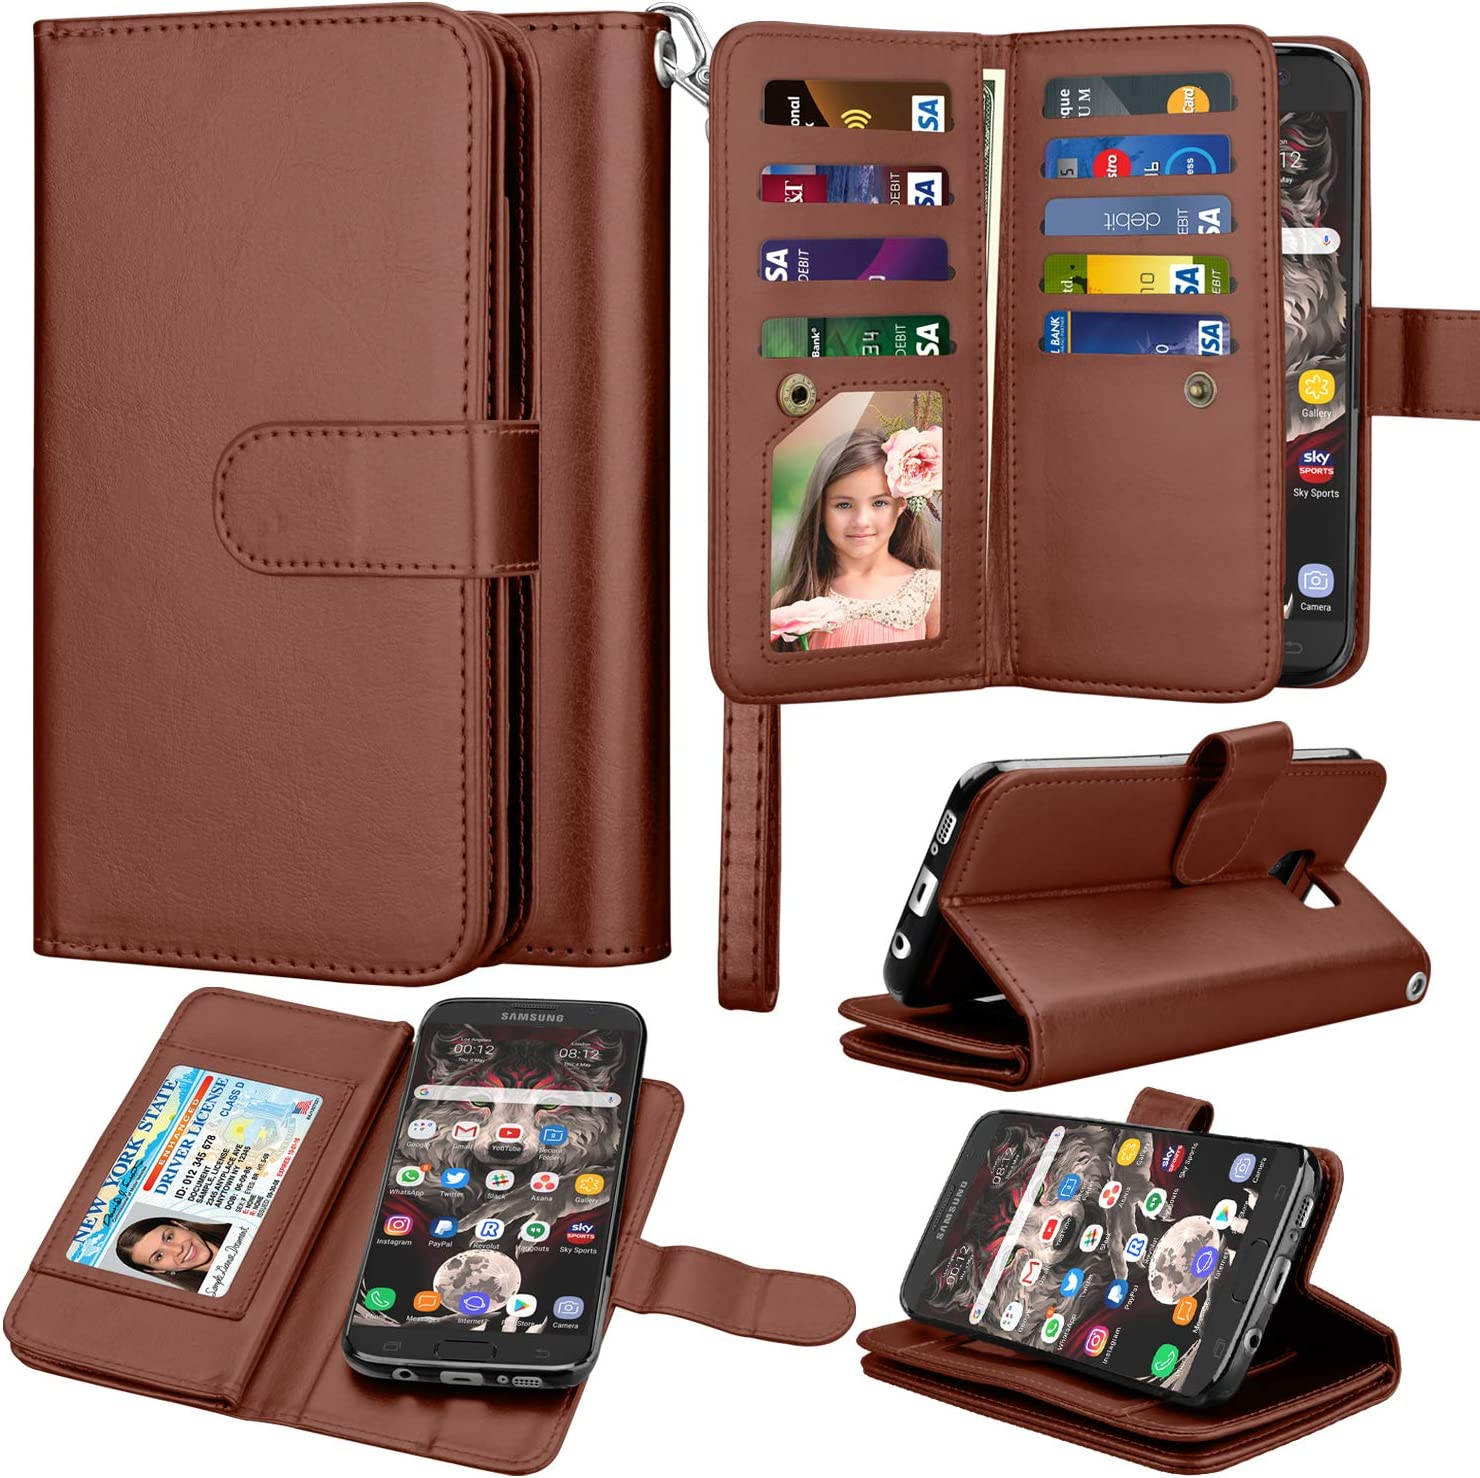 Takfox Wallet Case for Samsung Galaxy S7 Edge, Galaxy S7 Edge Case Wallet PU Leather with 9 Card Slots Holder Folio Flip Magnetic Detachable Phone Case & Wrist Strap for Samsung Galaxy S7 Edge-Brown